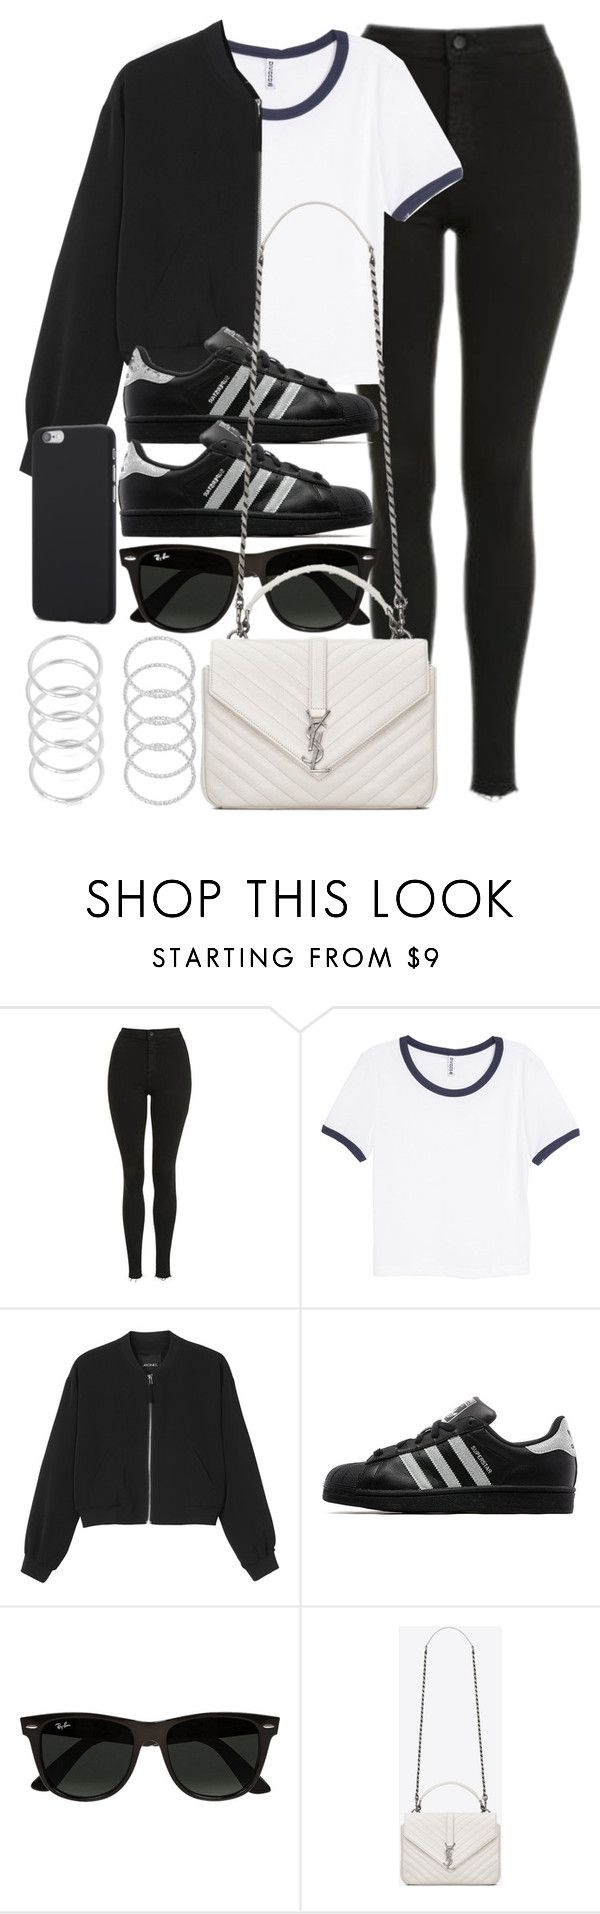 """Style #11103"" by vany-alvarado ❤ liked on Polyvore featuring Topshop, H&M, Monki, adidas Originals, Ray-Ban and Yves Saint Laurent"